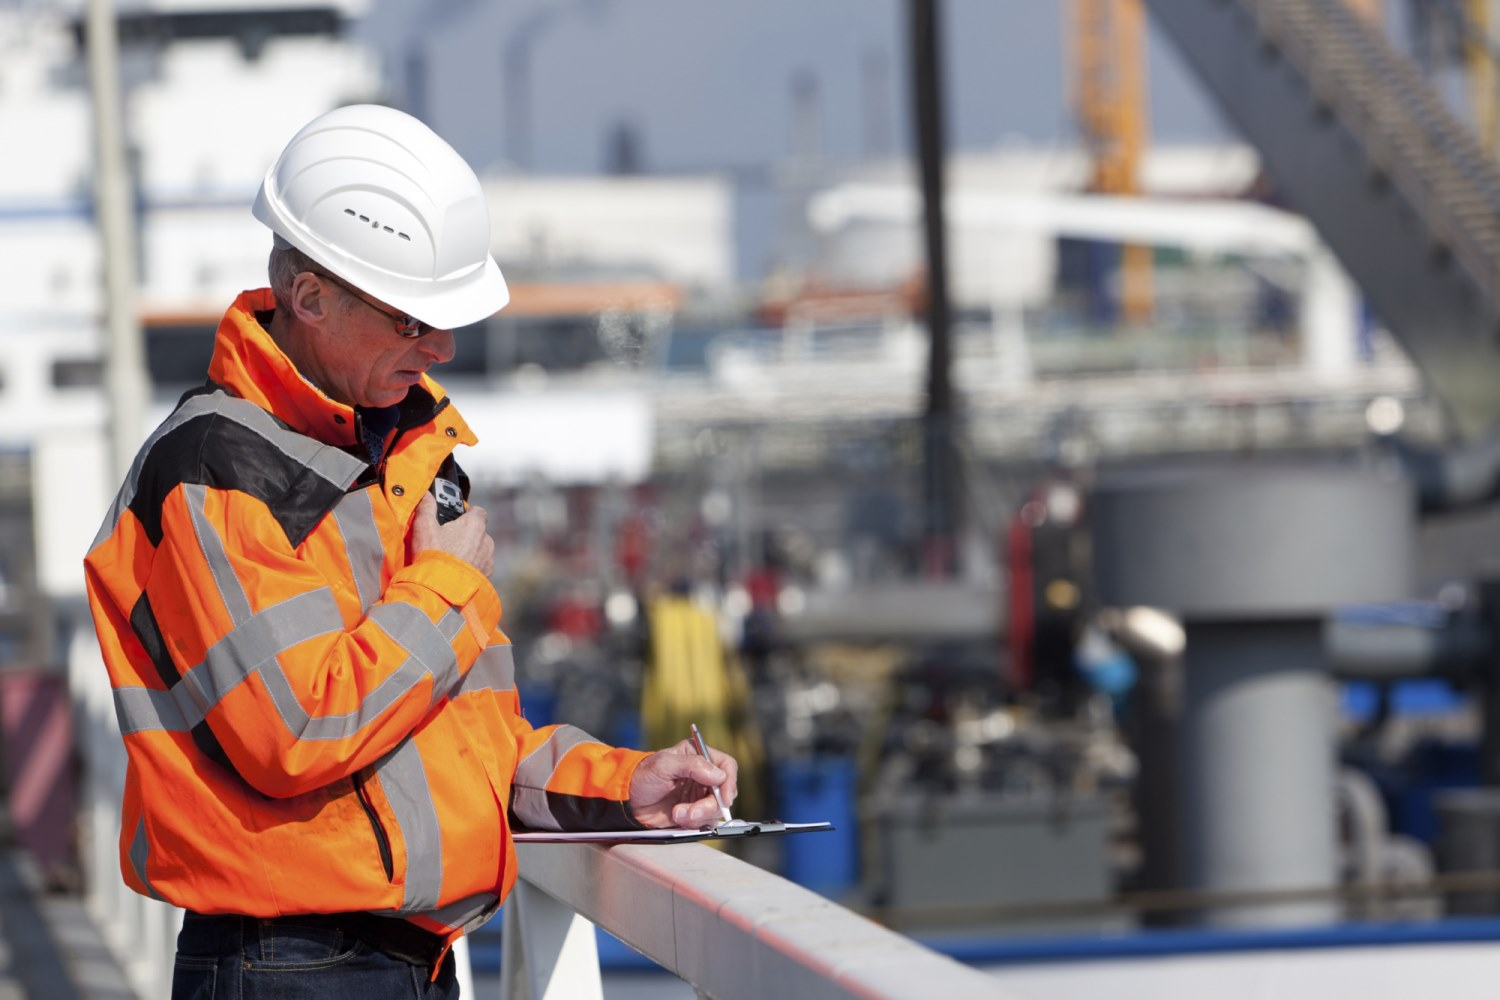 Dockworker giving instructions and writing  [url=http://www.istockphoto.com/file_search.php?action=file&userID=1153464&text=model61] Please click for more of this model[/url]     [url=http://www.istockphoto.com/file_search.php?action=file&userID=1153464&text=scene72] Please click for more of this series[/url] [url=http://www.istockphoto.com/file_search.php?action=file&userID=1153464&text=industry] Please click for more industry[/url]